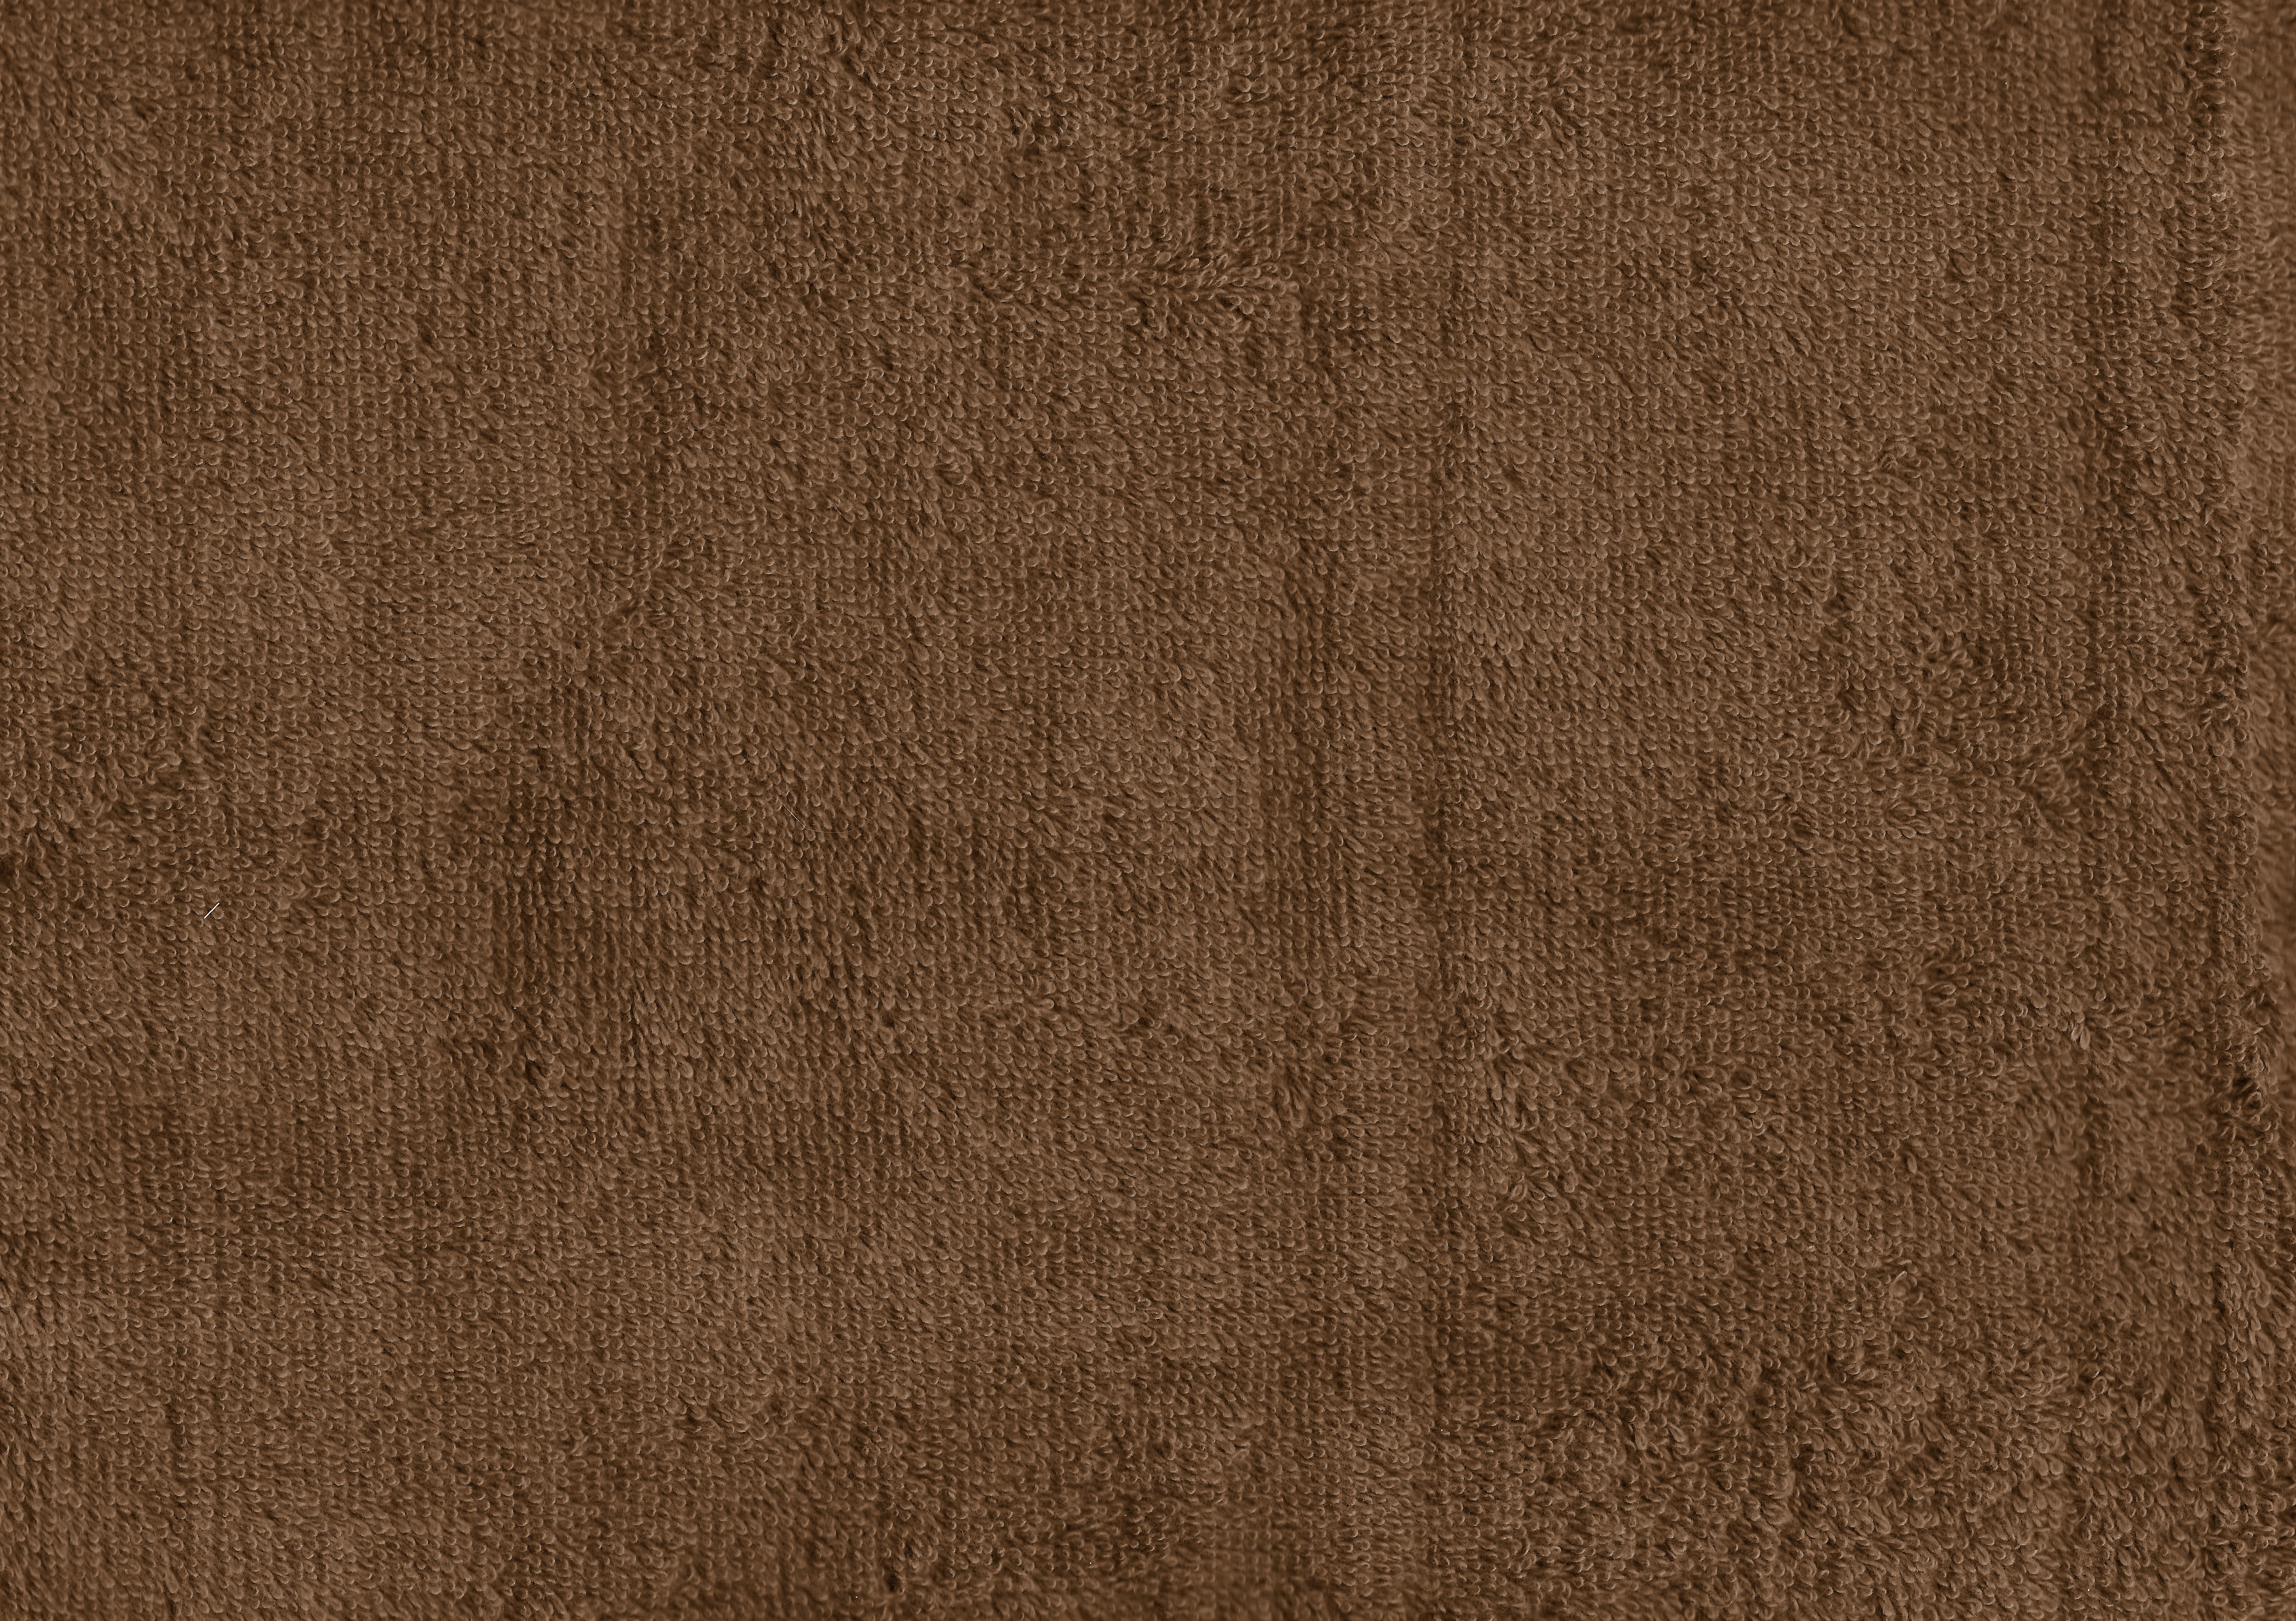 Brown Terry Cloth Towel Texture Picture Free Photograph